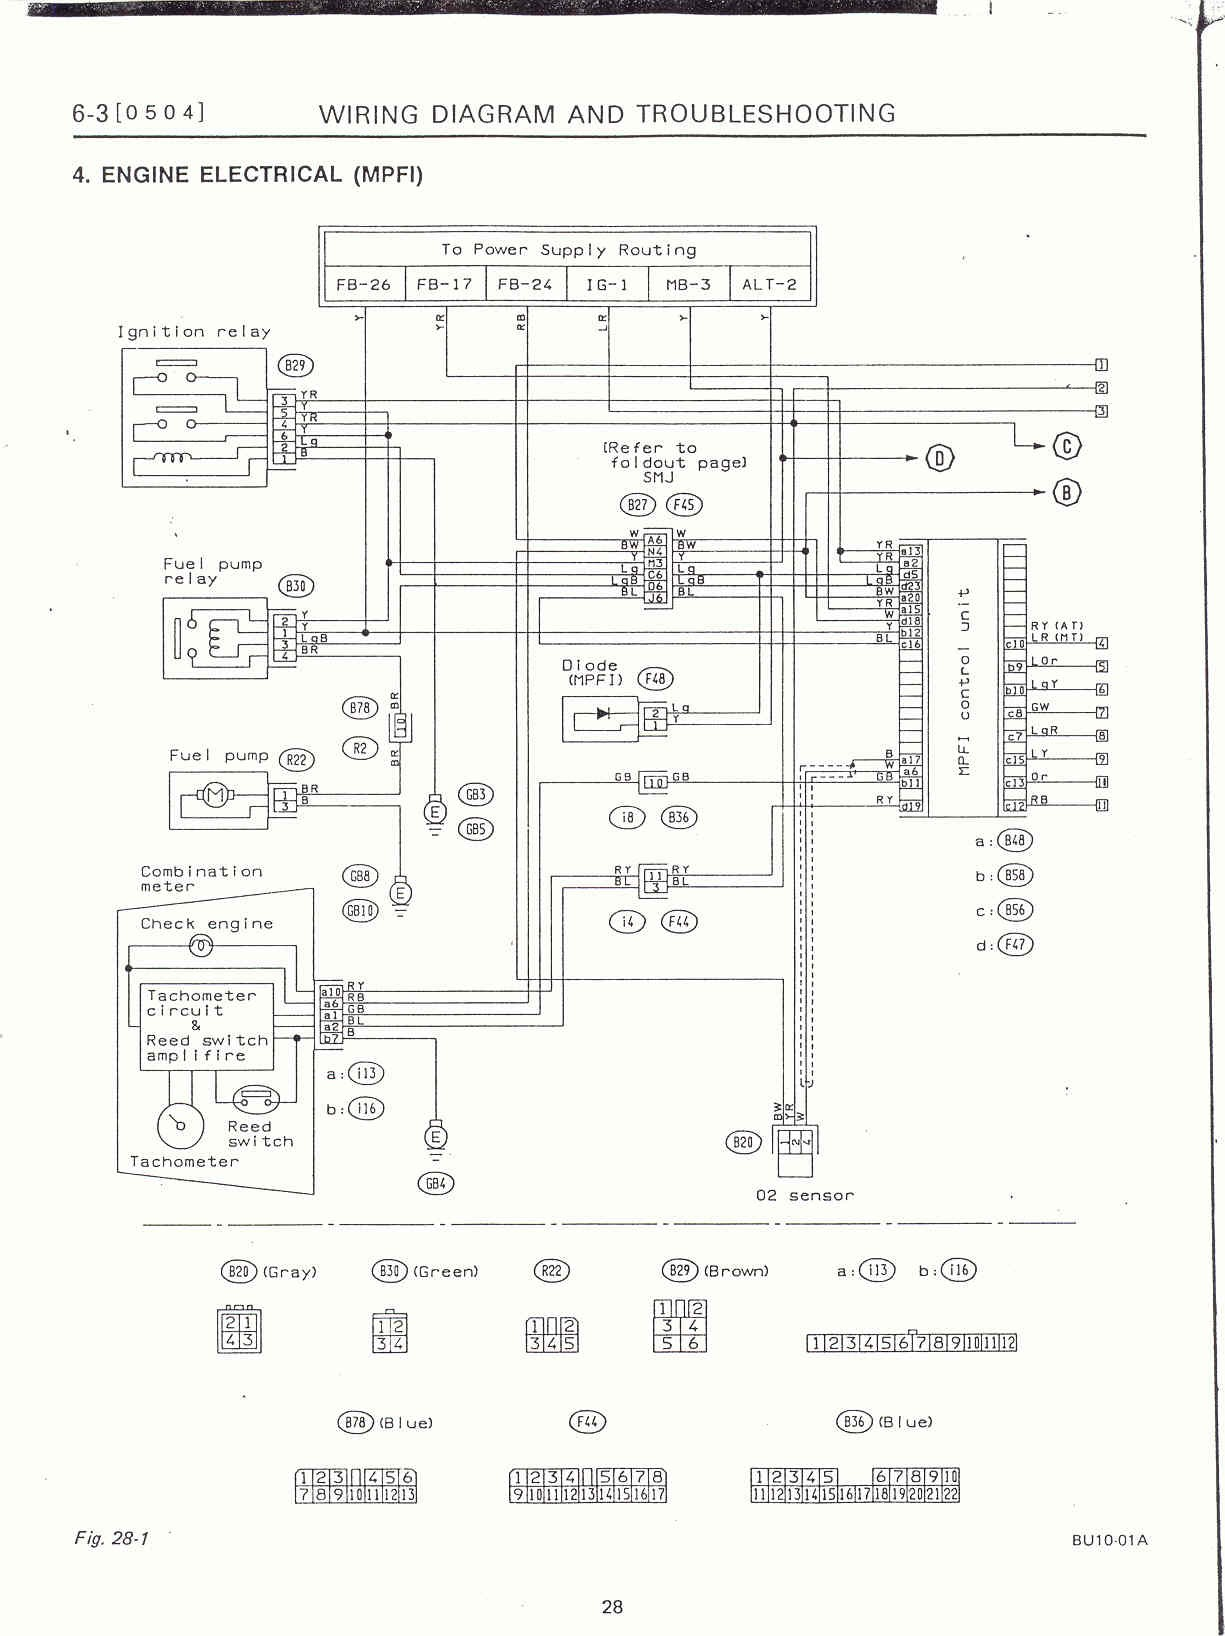 2002 Wrx Engine Diagram